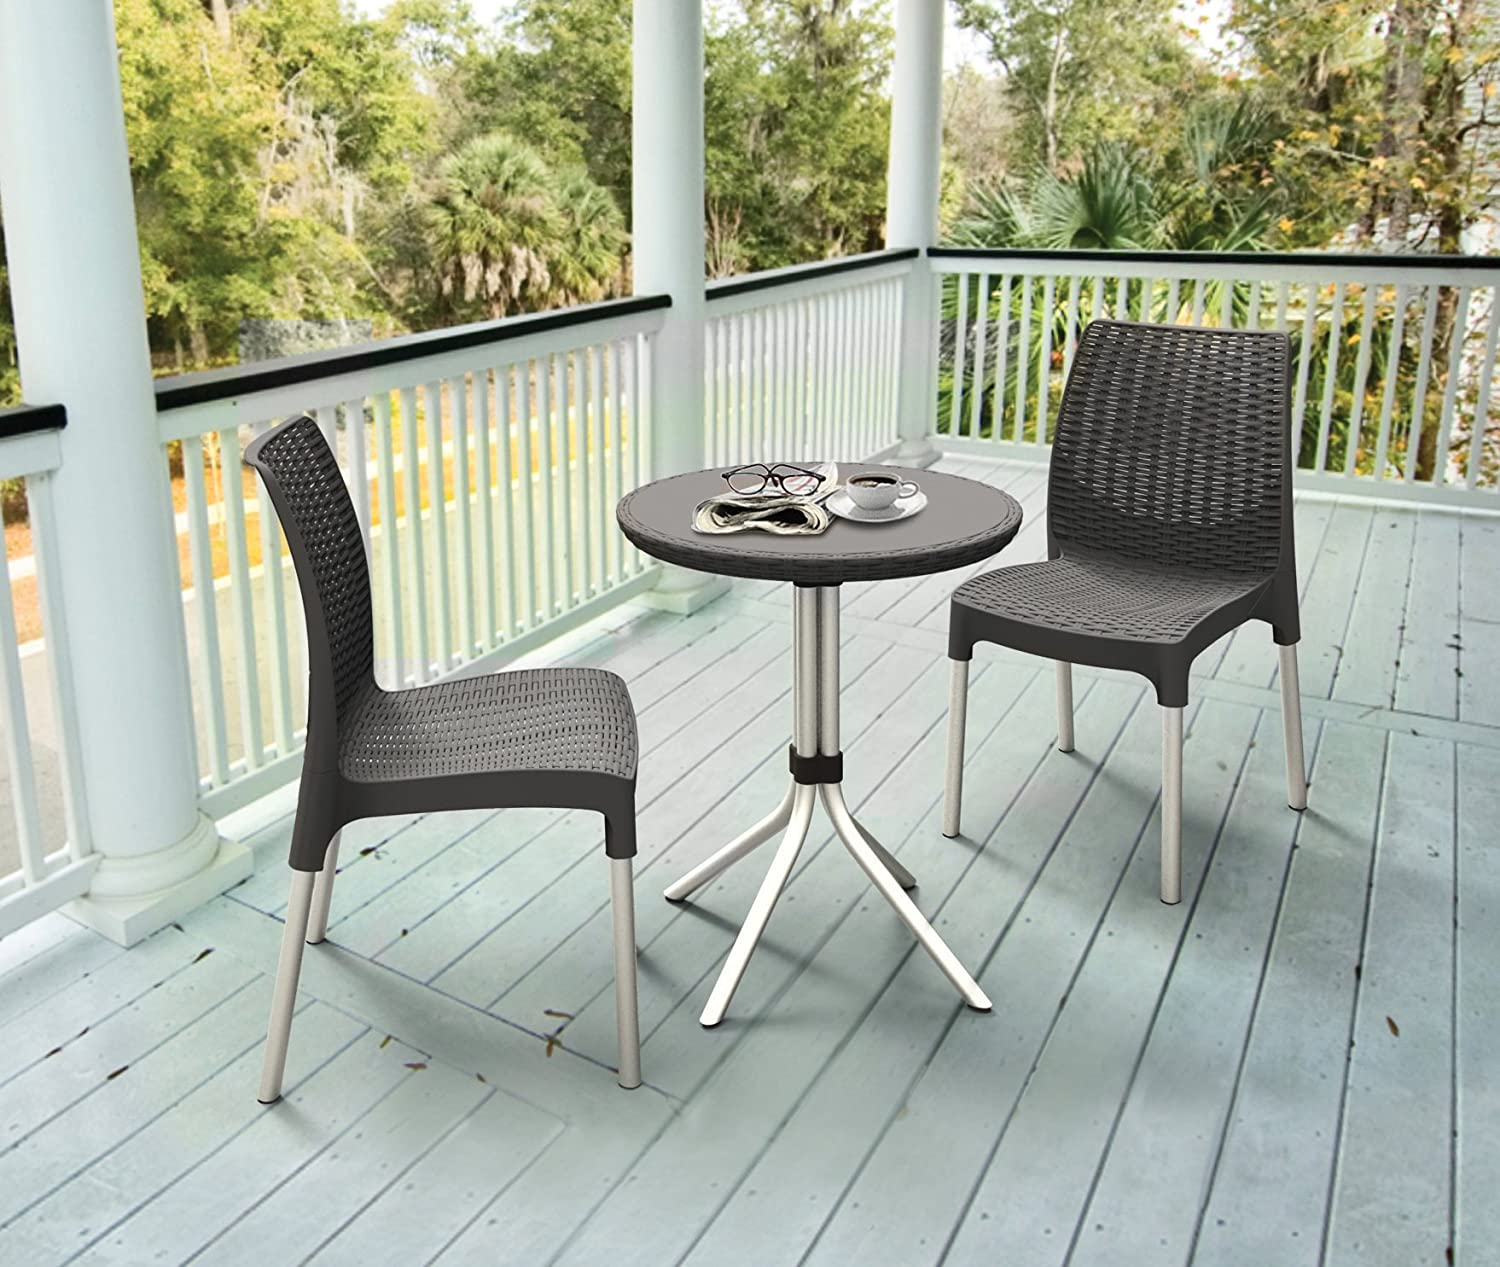 shop now luxury table outdoor air by yhst open patio lifestyles furniture